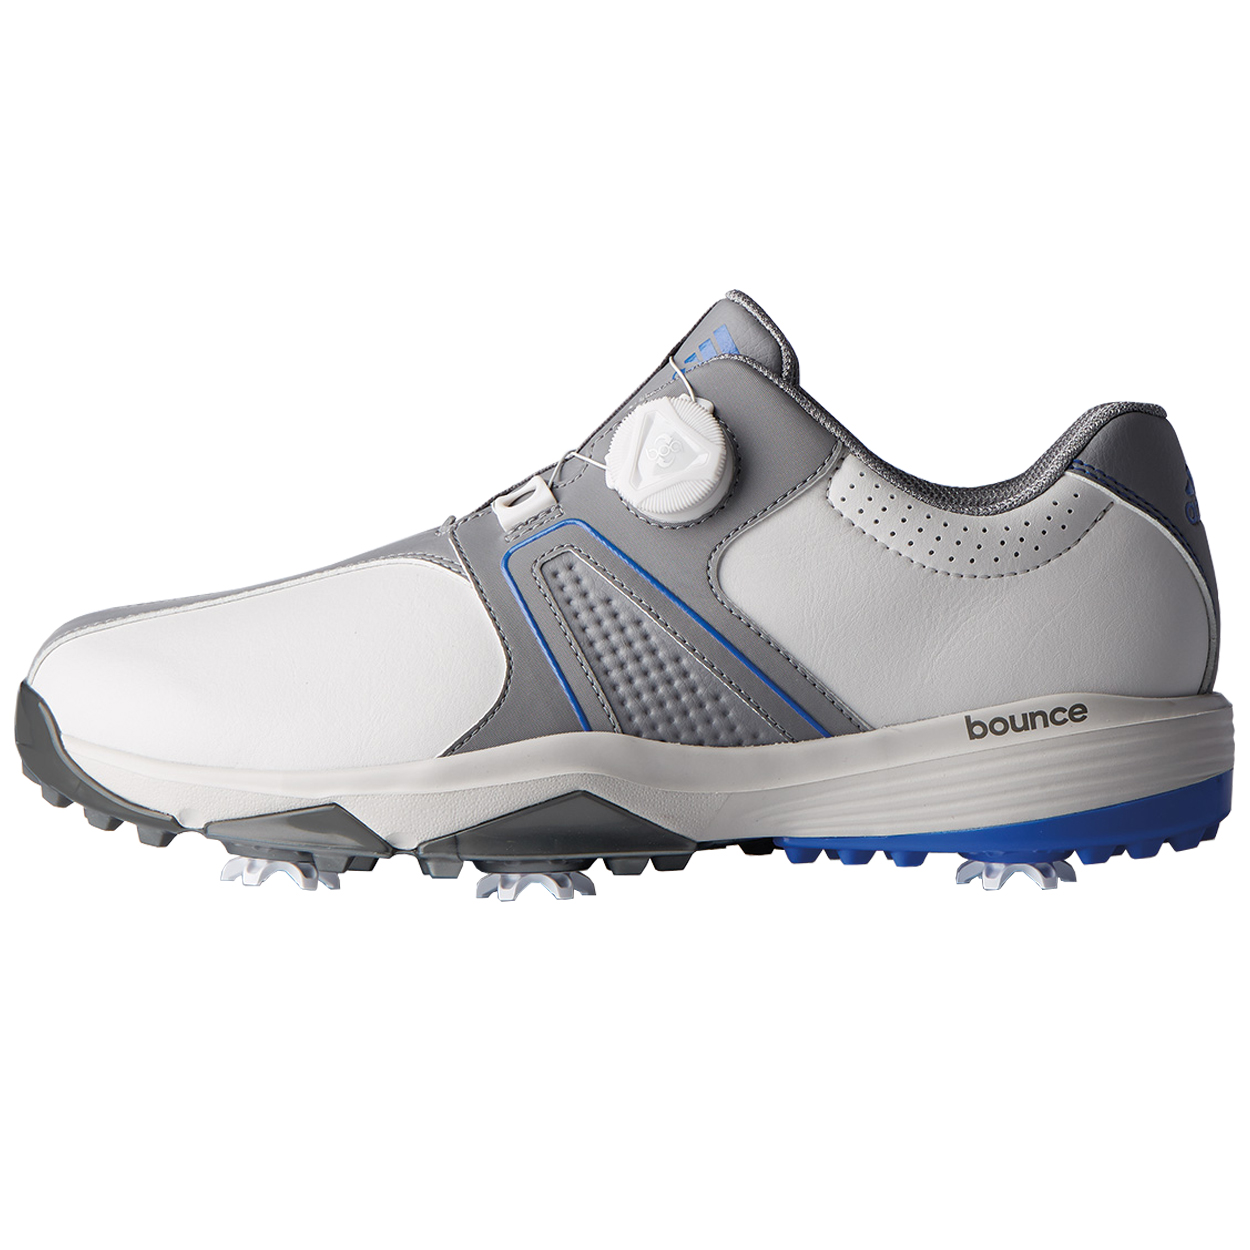 Adidas-Men-039-s-360-Traxion-Golf-Shoes-with-Boa-Closure-New